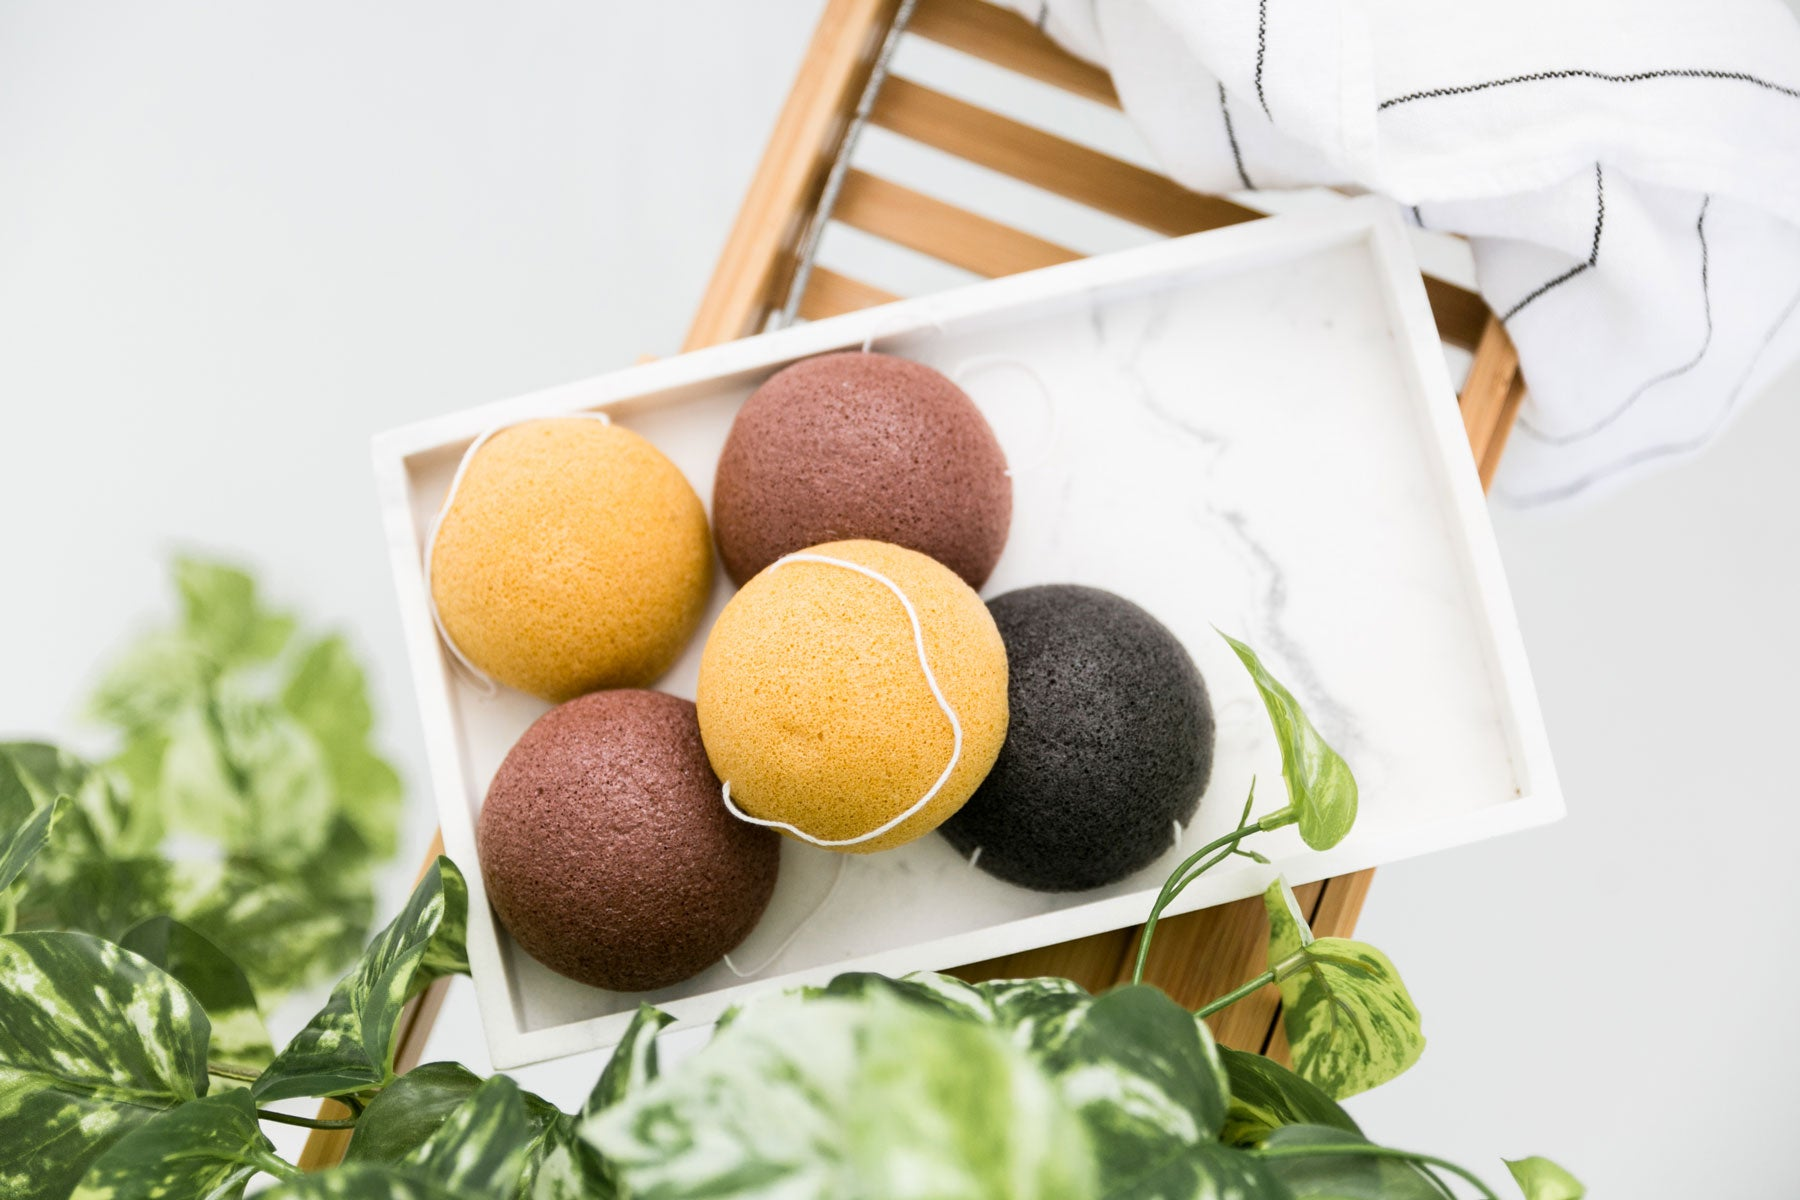 How to use your Konjac Sponge